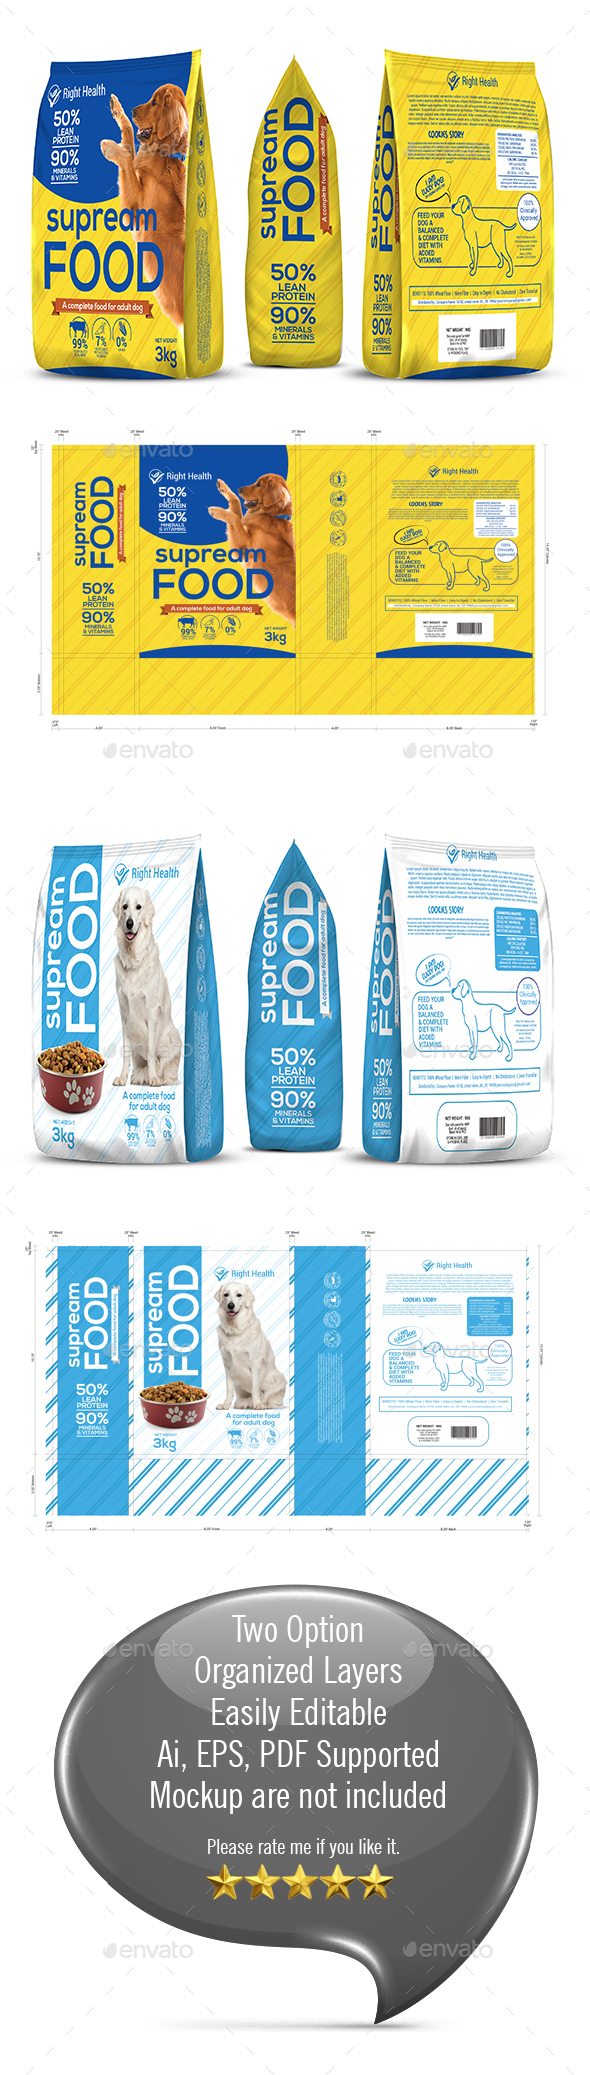 Dog Supplement Packaging Template-2 - Packaging Print Templates